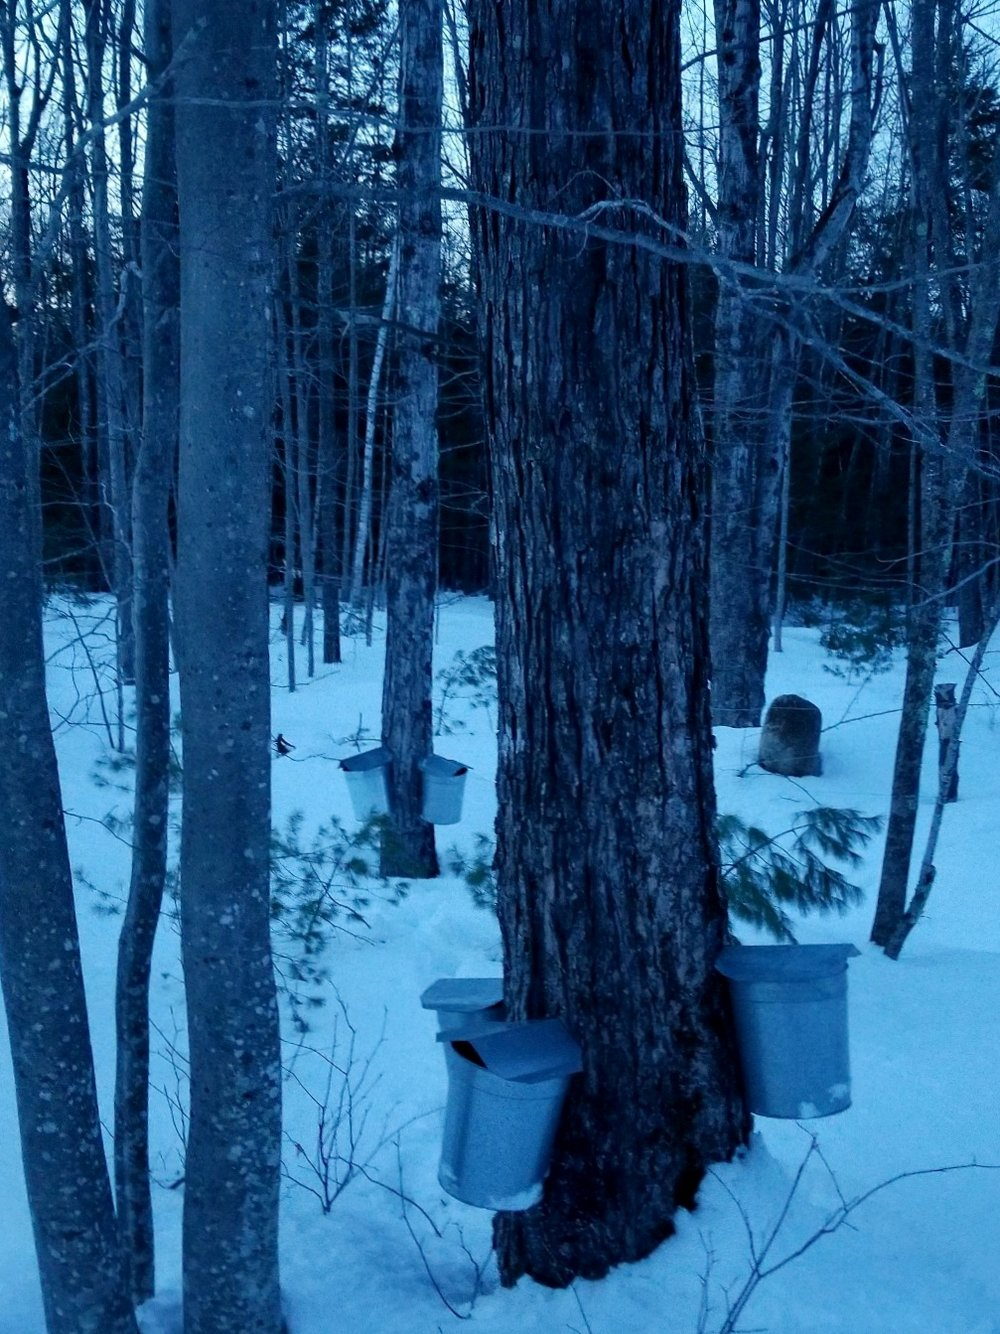 The Bean's have tapped the trees for 2019 and the flow of sap is happening!! Yum can't wait for this years Bean's Maple Syrup!!!!